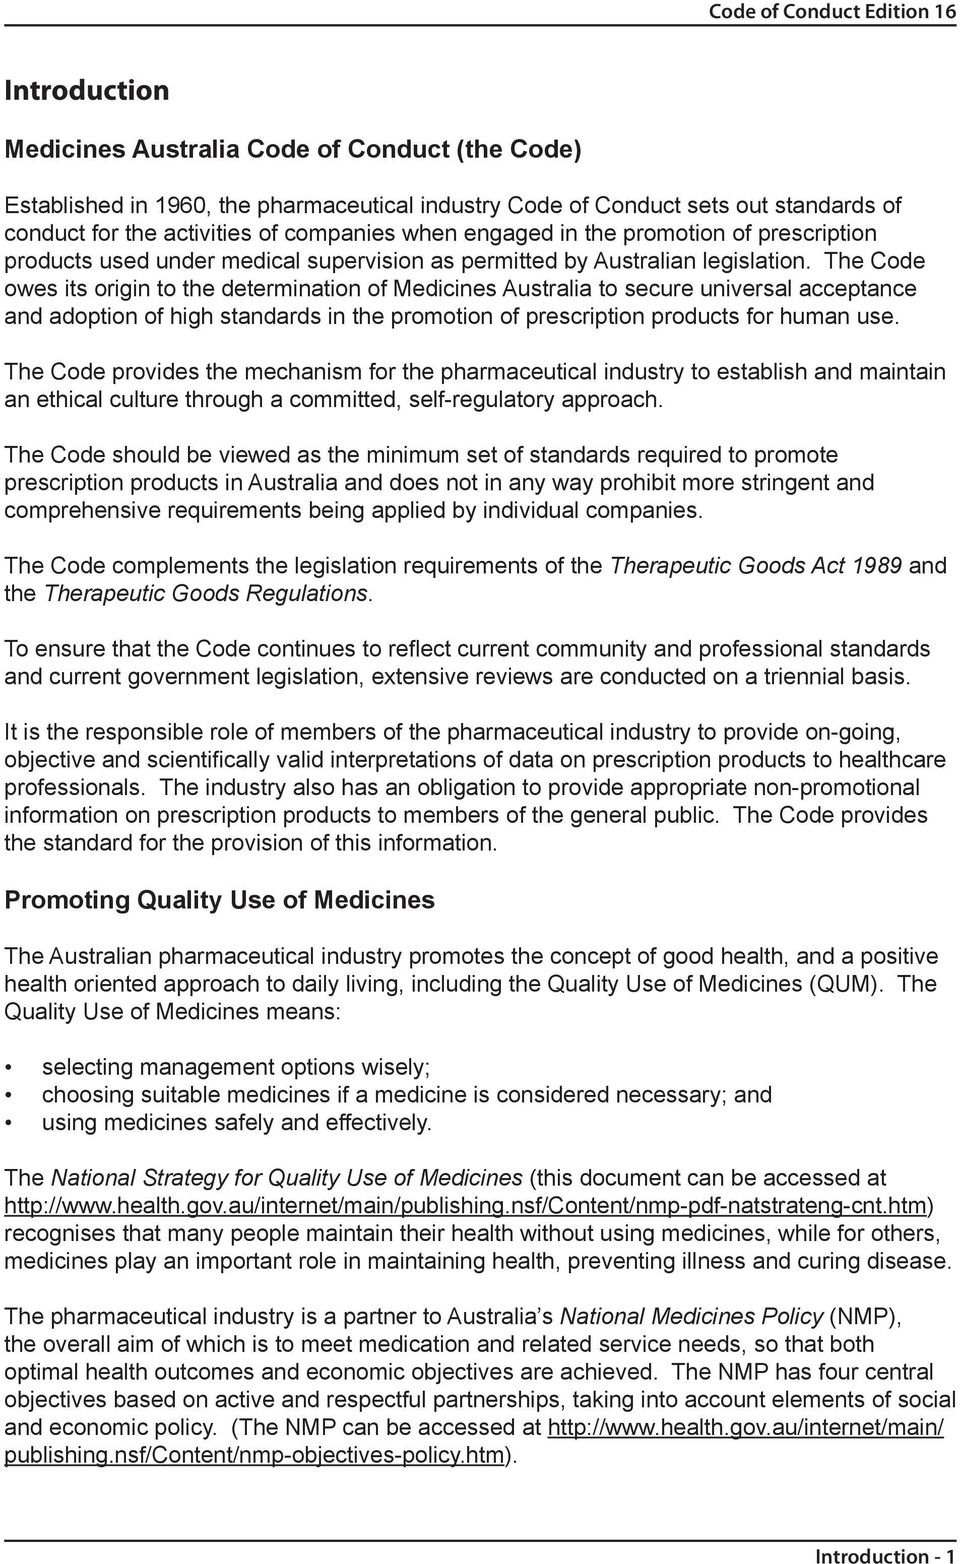 The Code owes its origin to the determination of Medicines Australia to secure universal acceptance and adoption of high standards in the promotion of prescription products for human use.